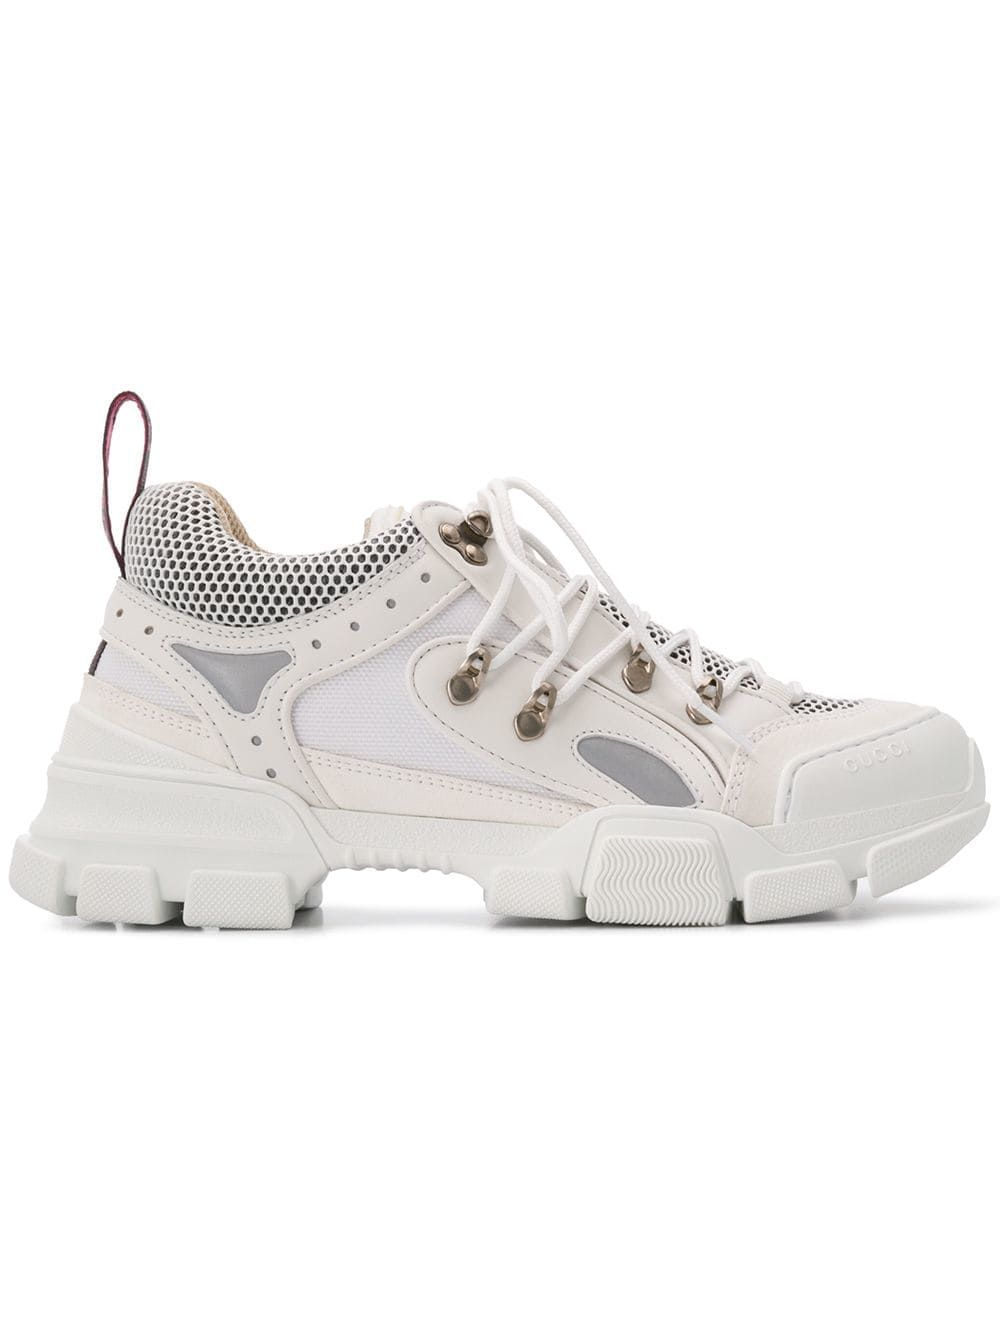 GUCCI GUCCI FLASHTREK SNEAKERS - WHITE.  gucci  shoes  1441beaafe7